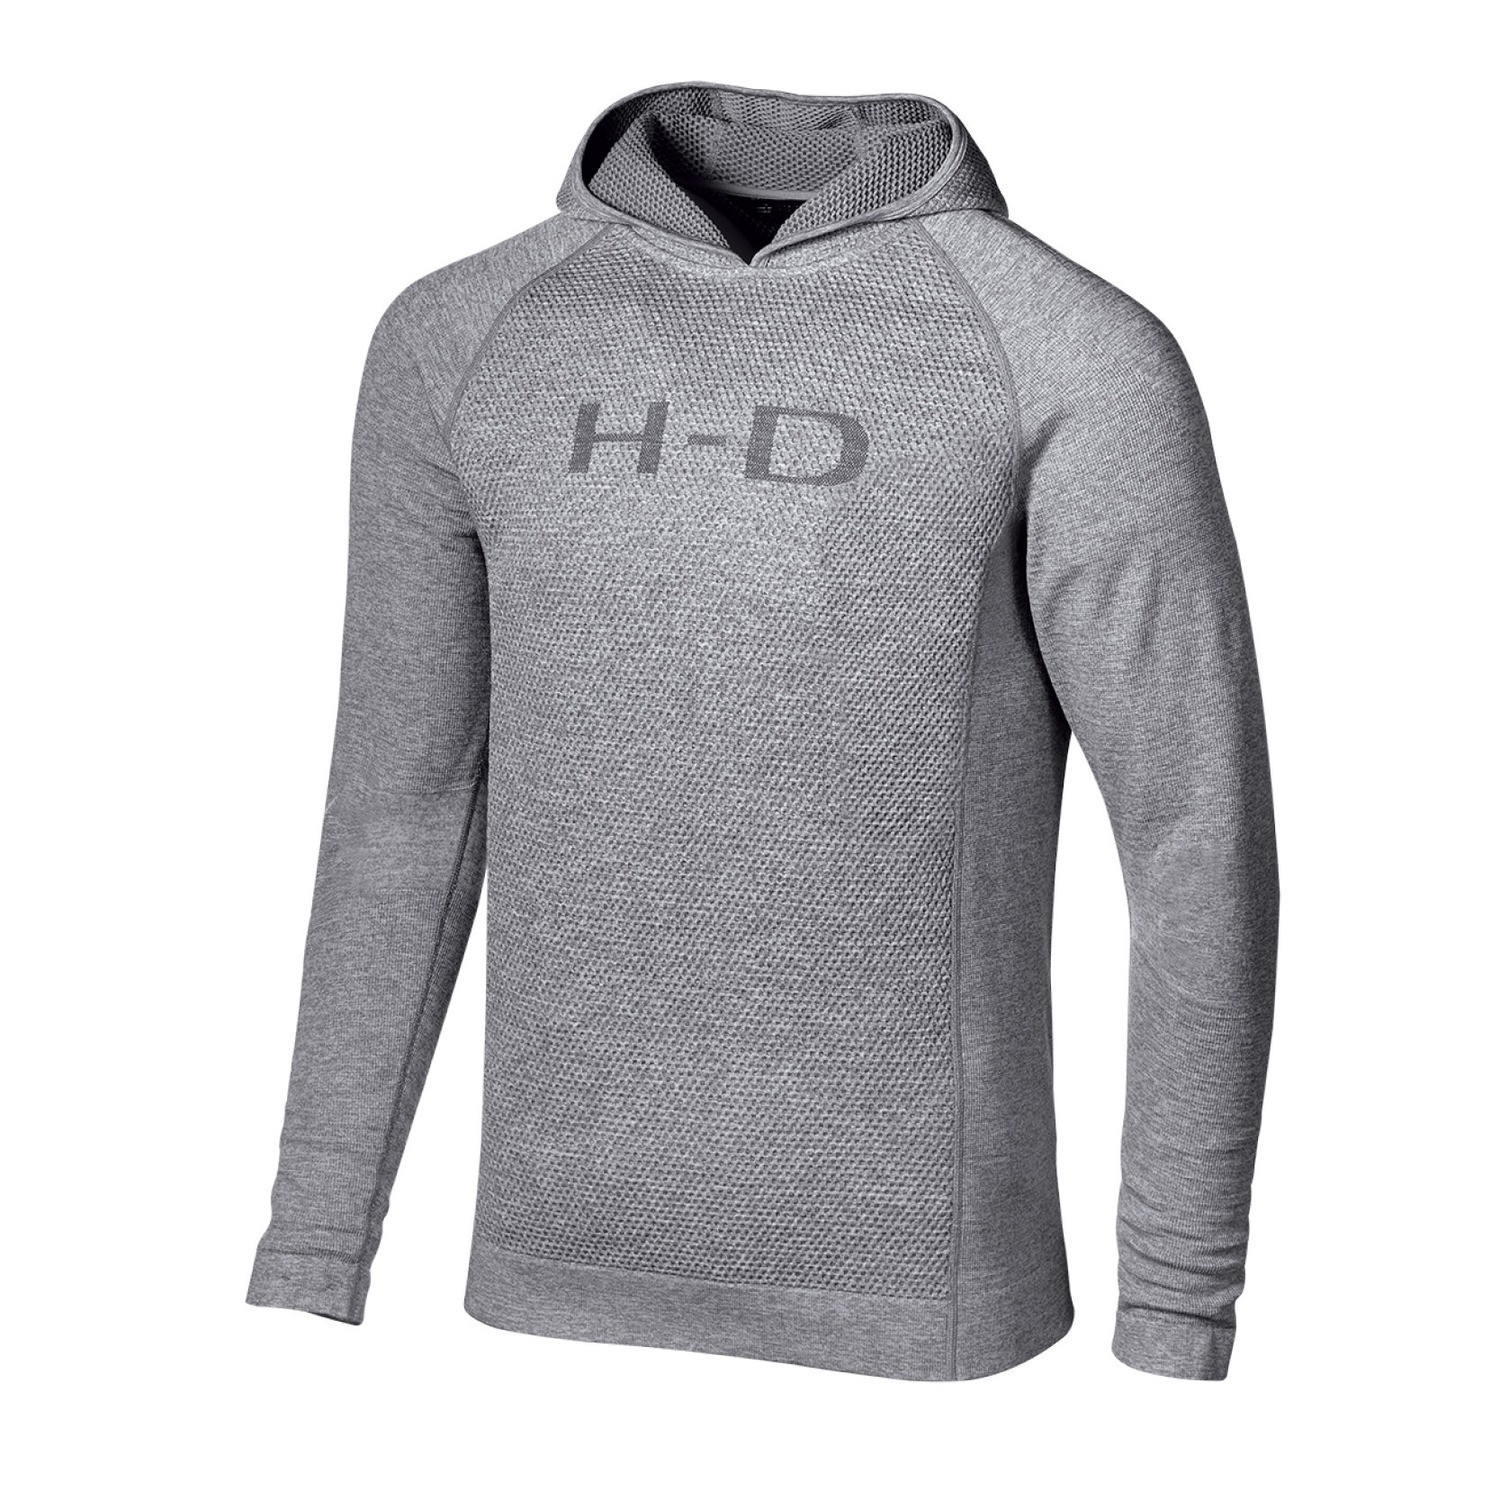 Hoodie Men H-D® Moto Mixed Knit Slim Fit